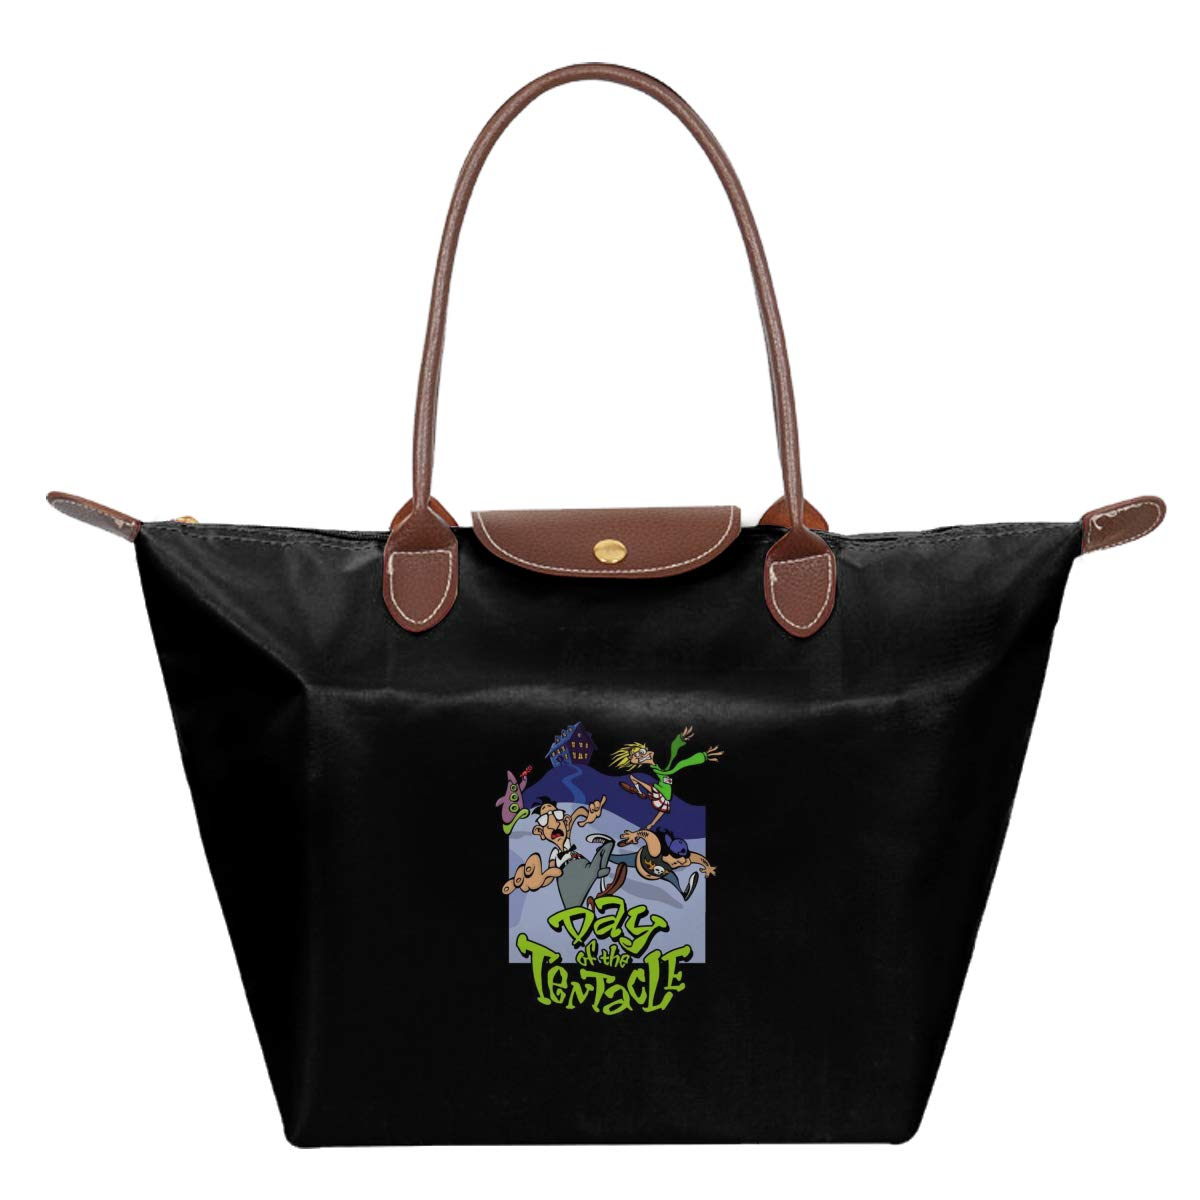 Day Of The Tentacle Waterproof Leather Folded Messenger Nylon Bag Travel Tote Hopping Folding School Handbags